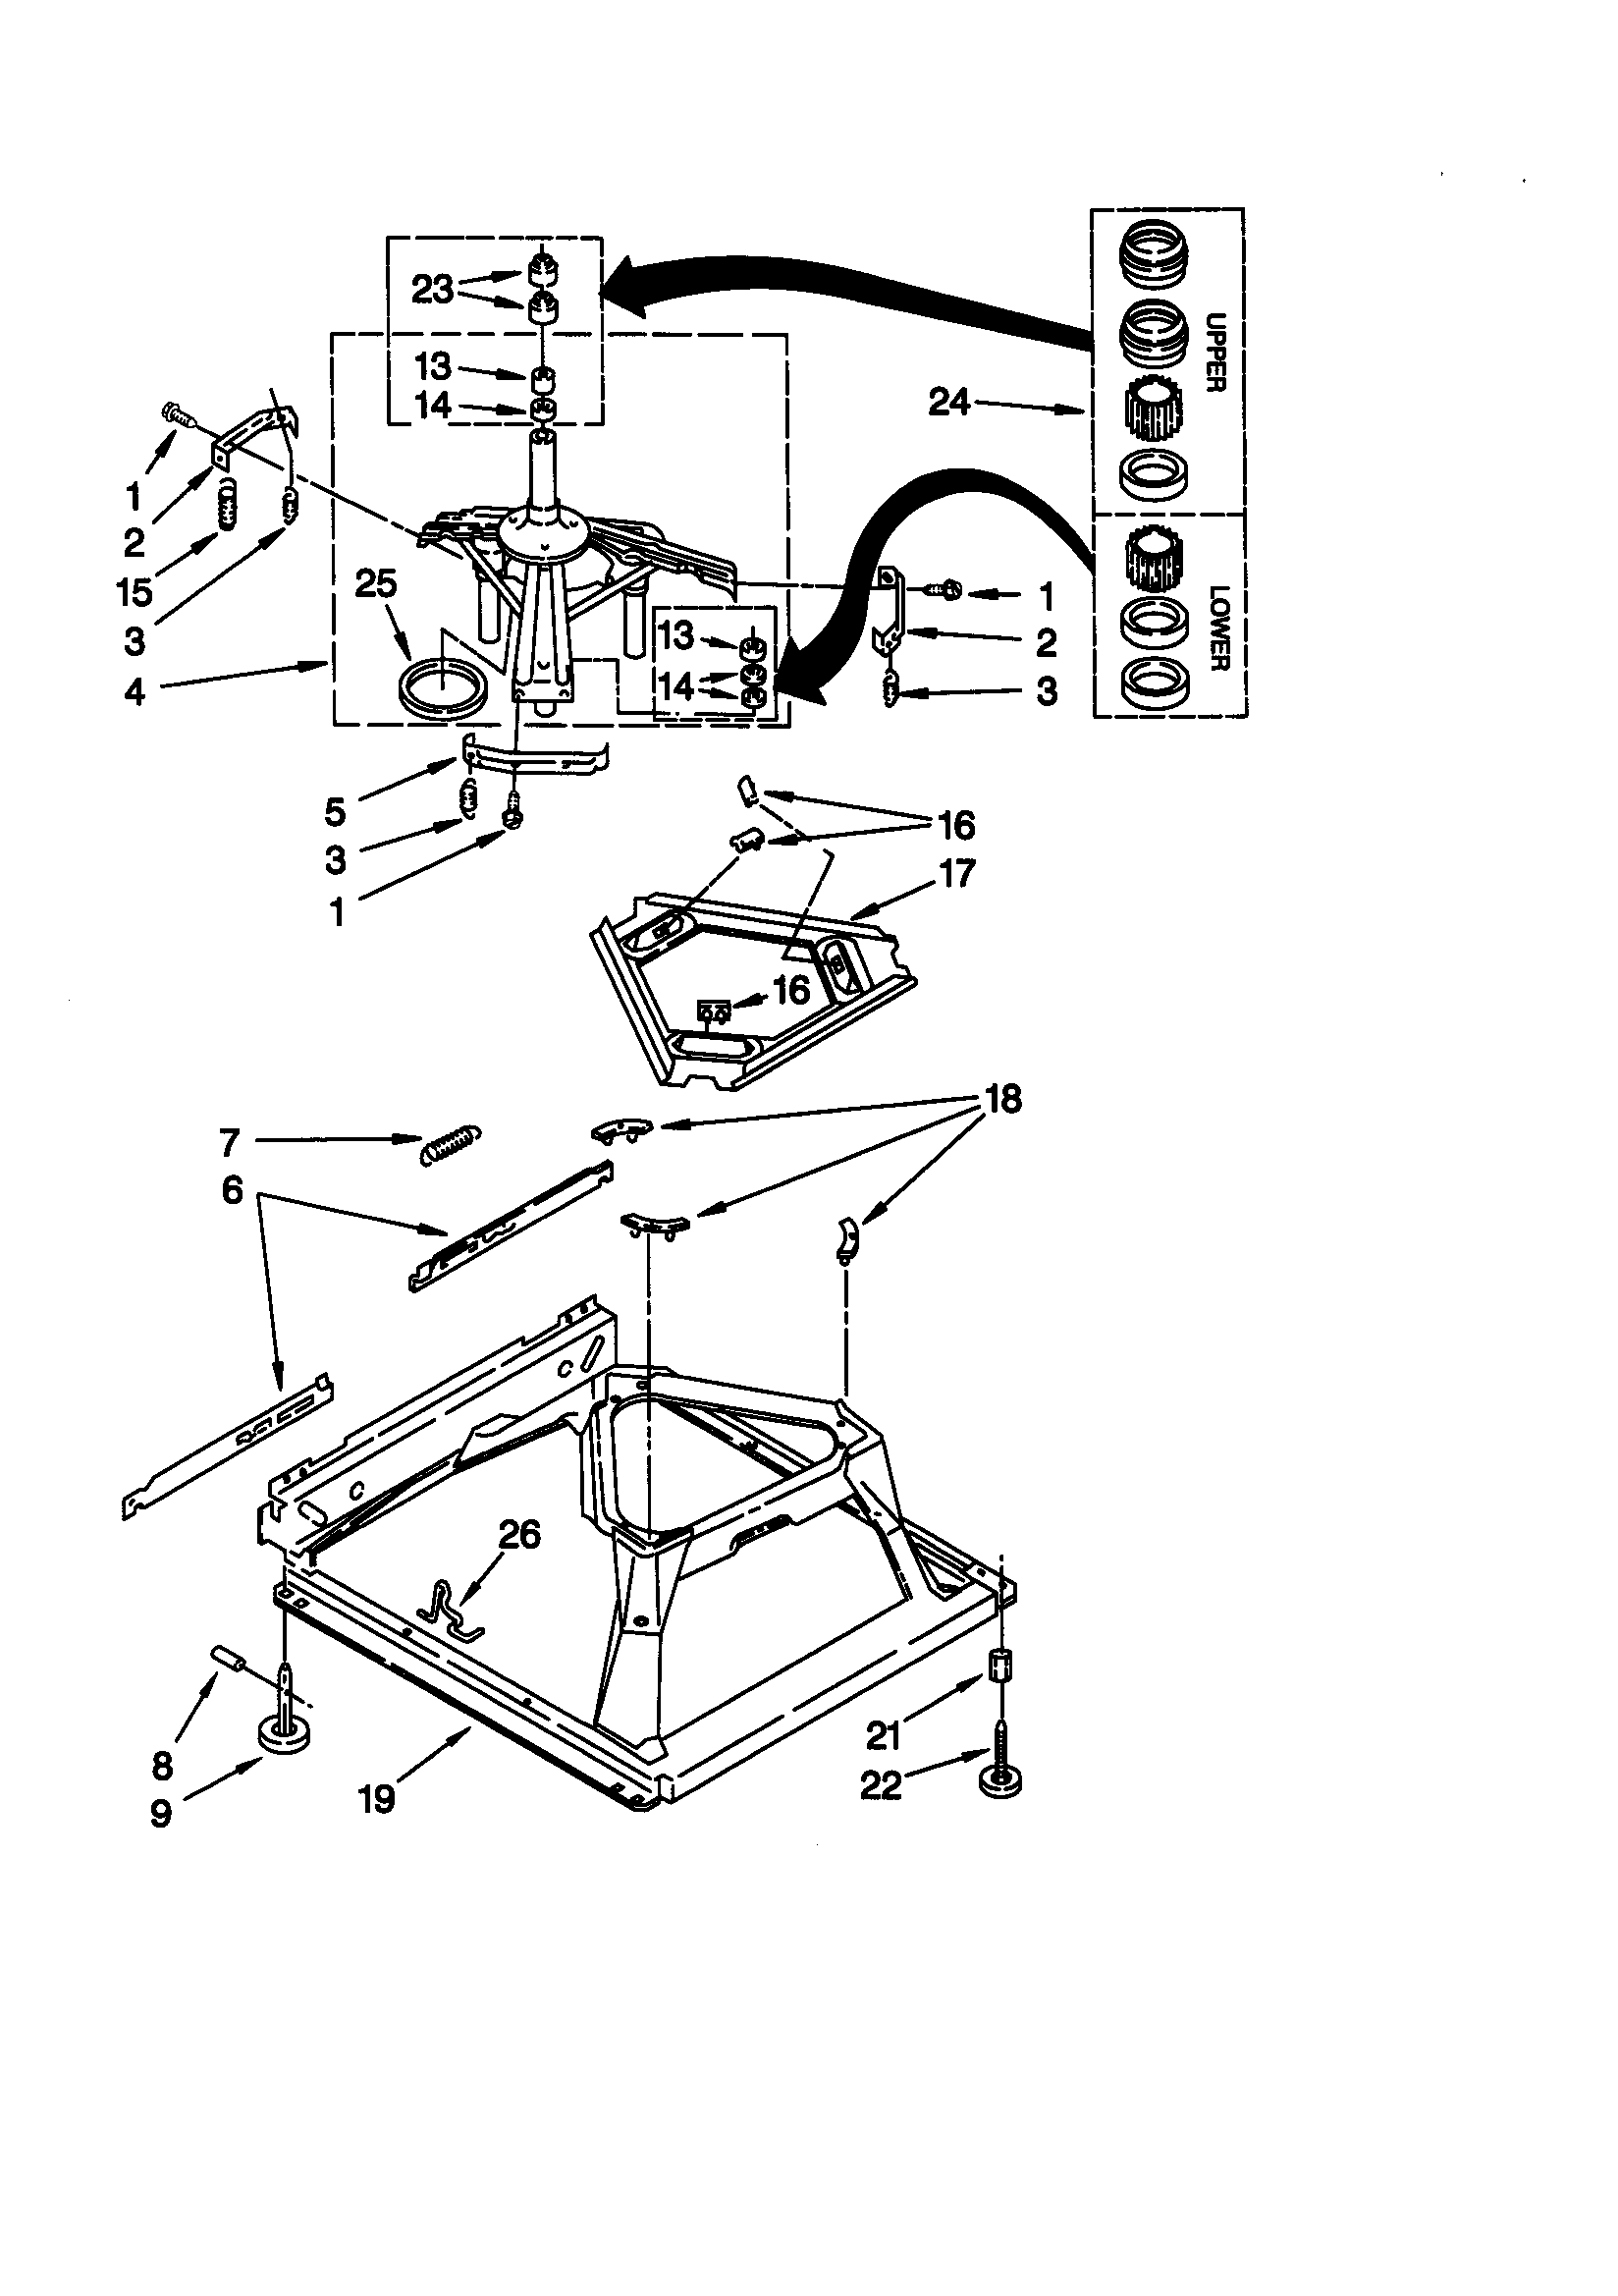 MACHINE BASE Diagram & Parts List for Model 11020842990